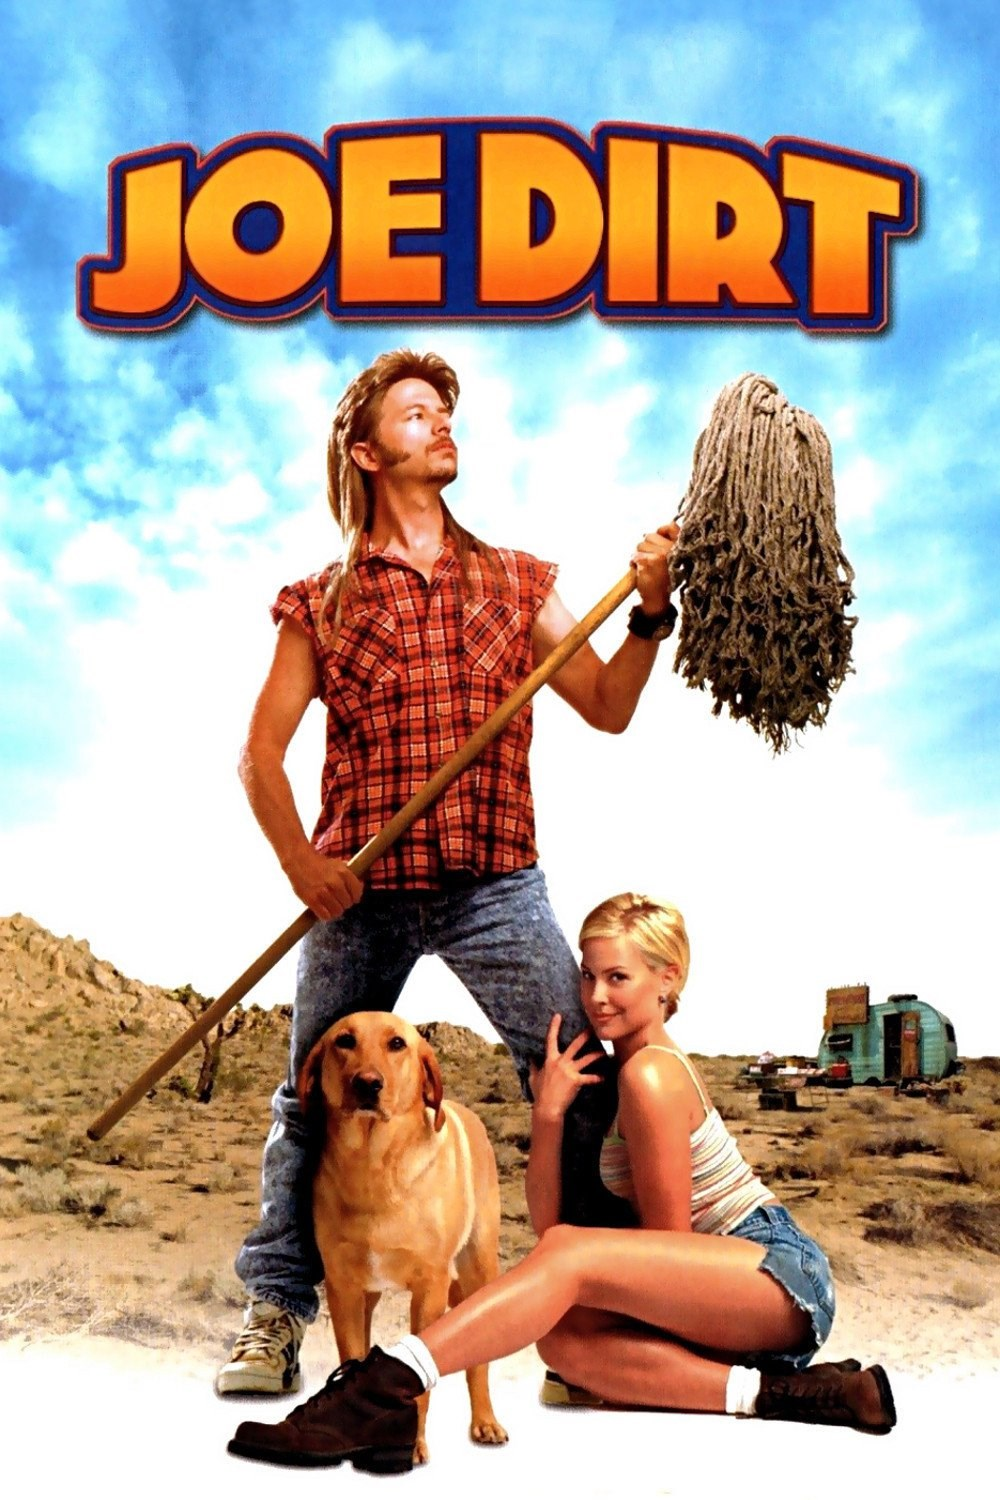 an analysis of the movie joe dirt This film is the story of the spectacular life and violent death of british playwright joe  the #1 movie review, analysis,  red dirt offers the story of a young.